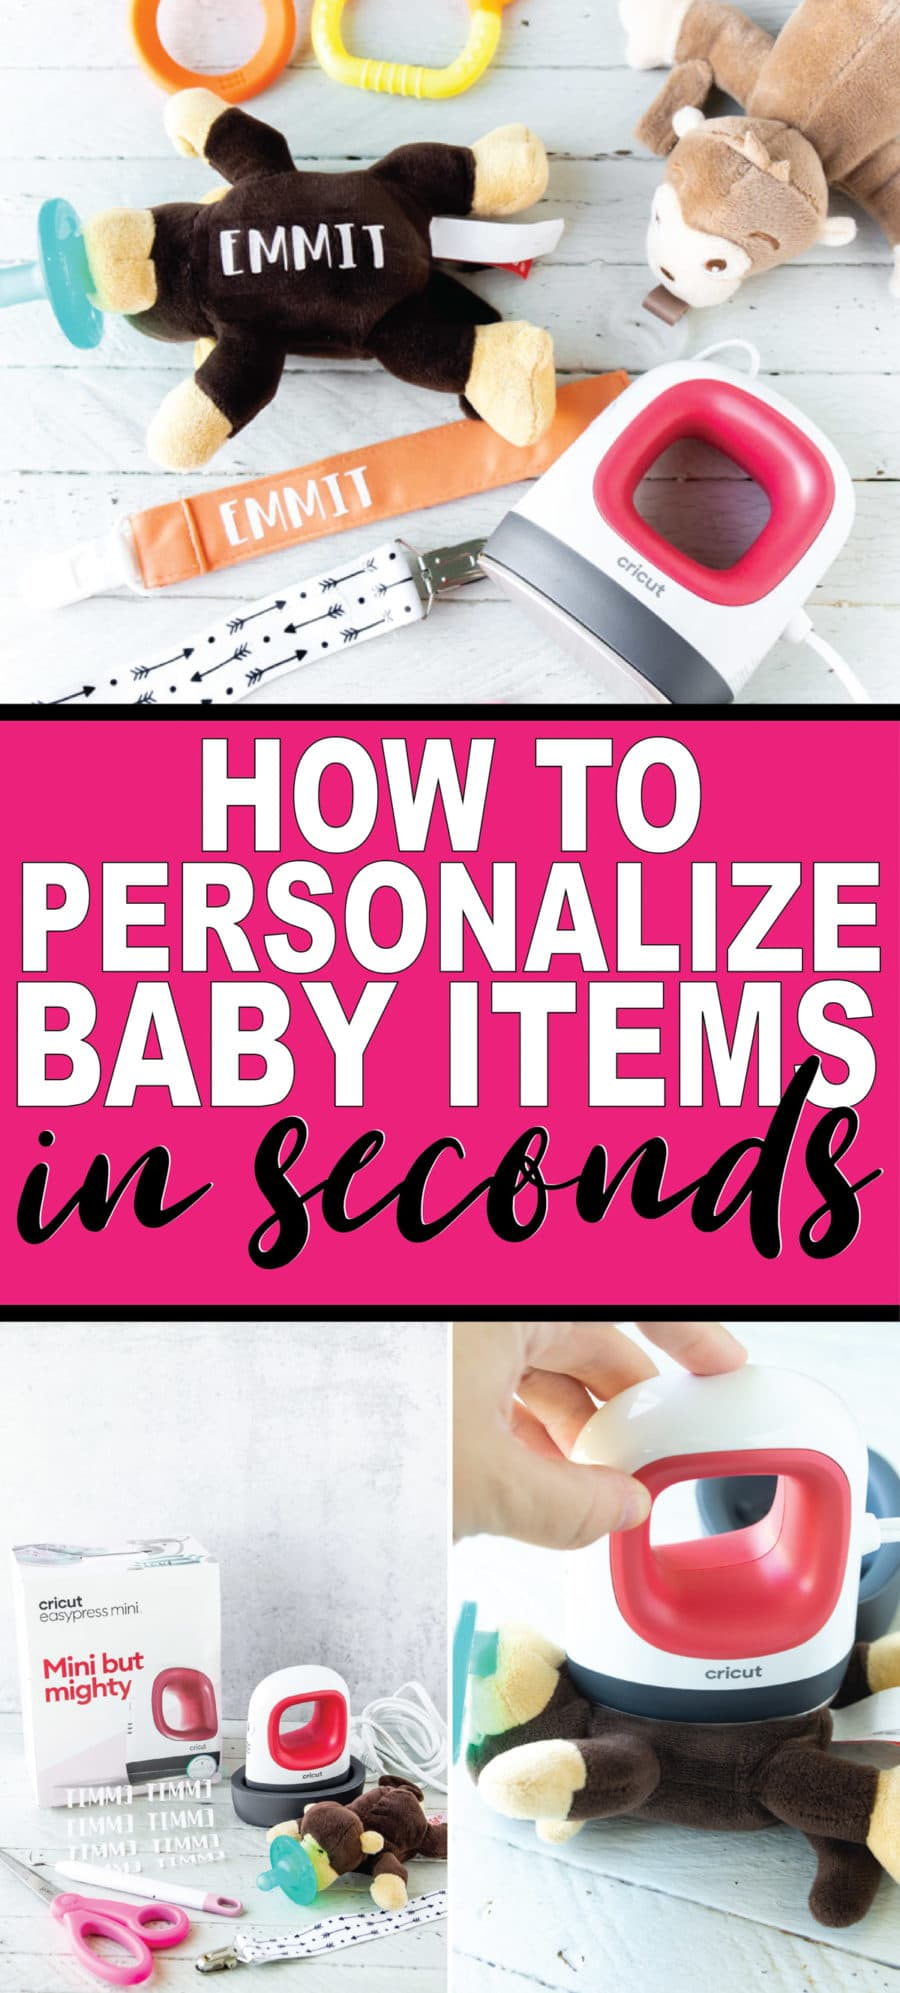 How to personalize baby items with the Cricut EasyPress Mini